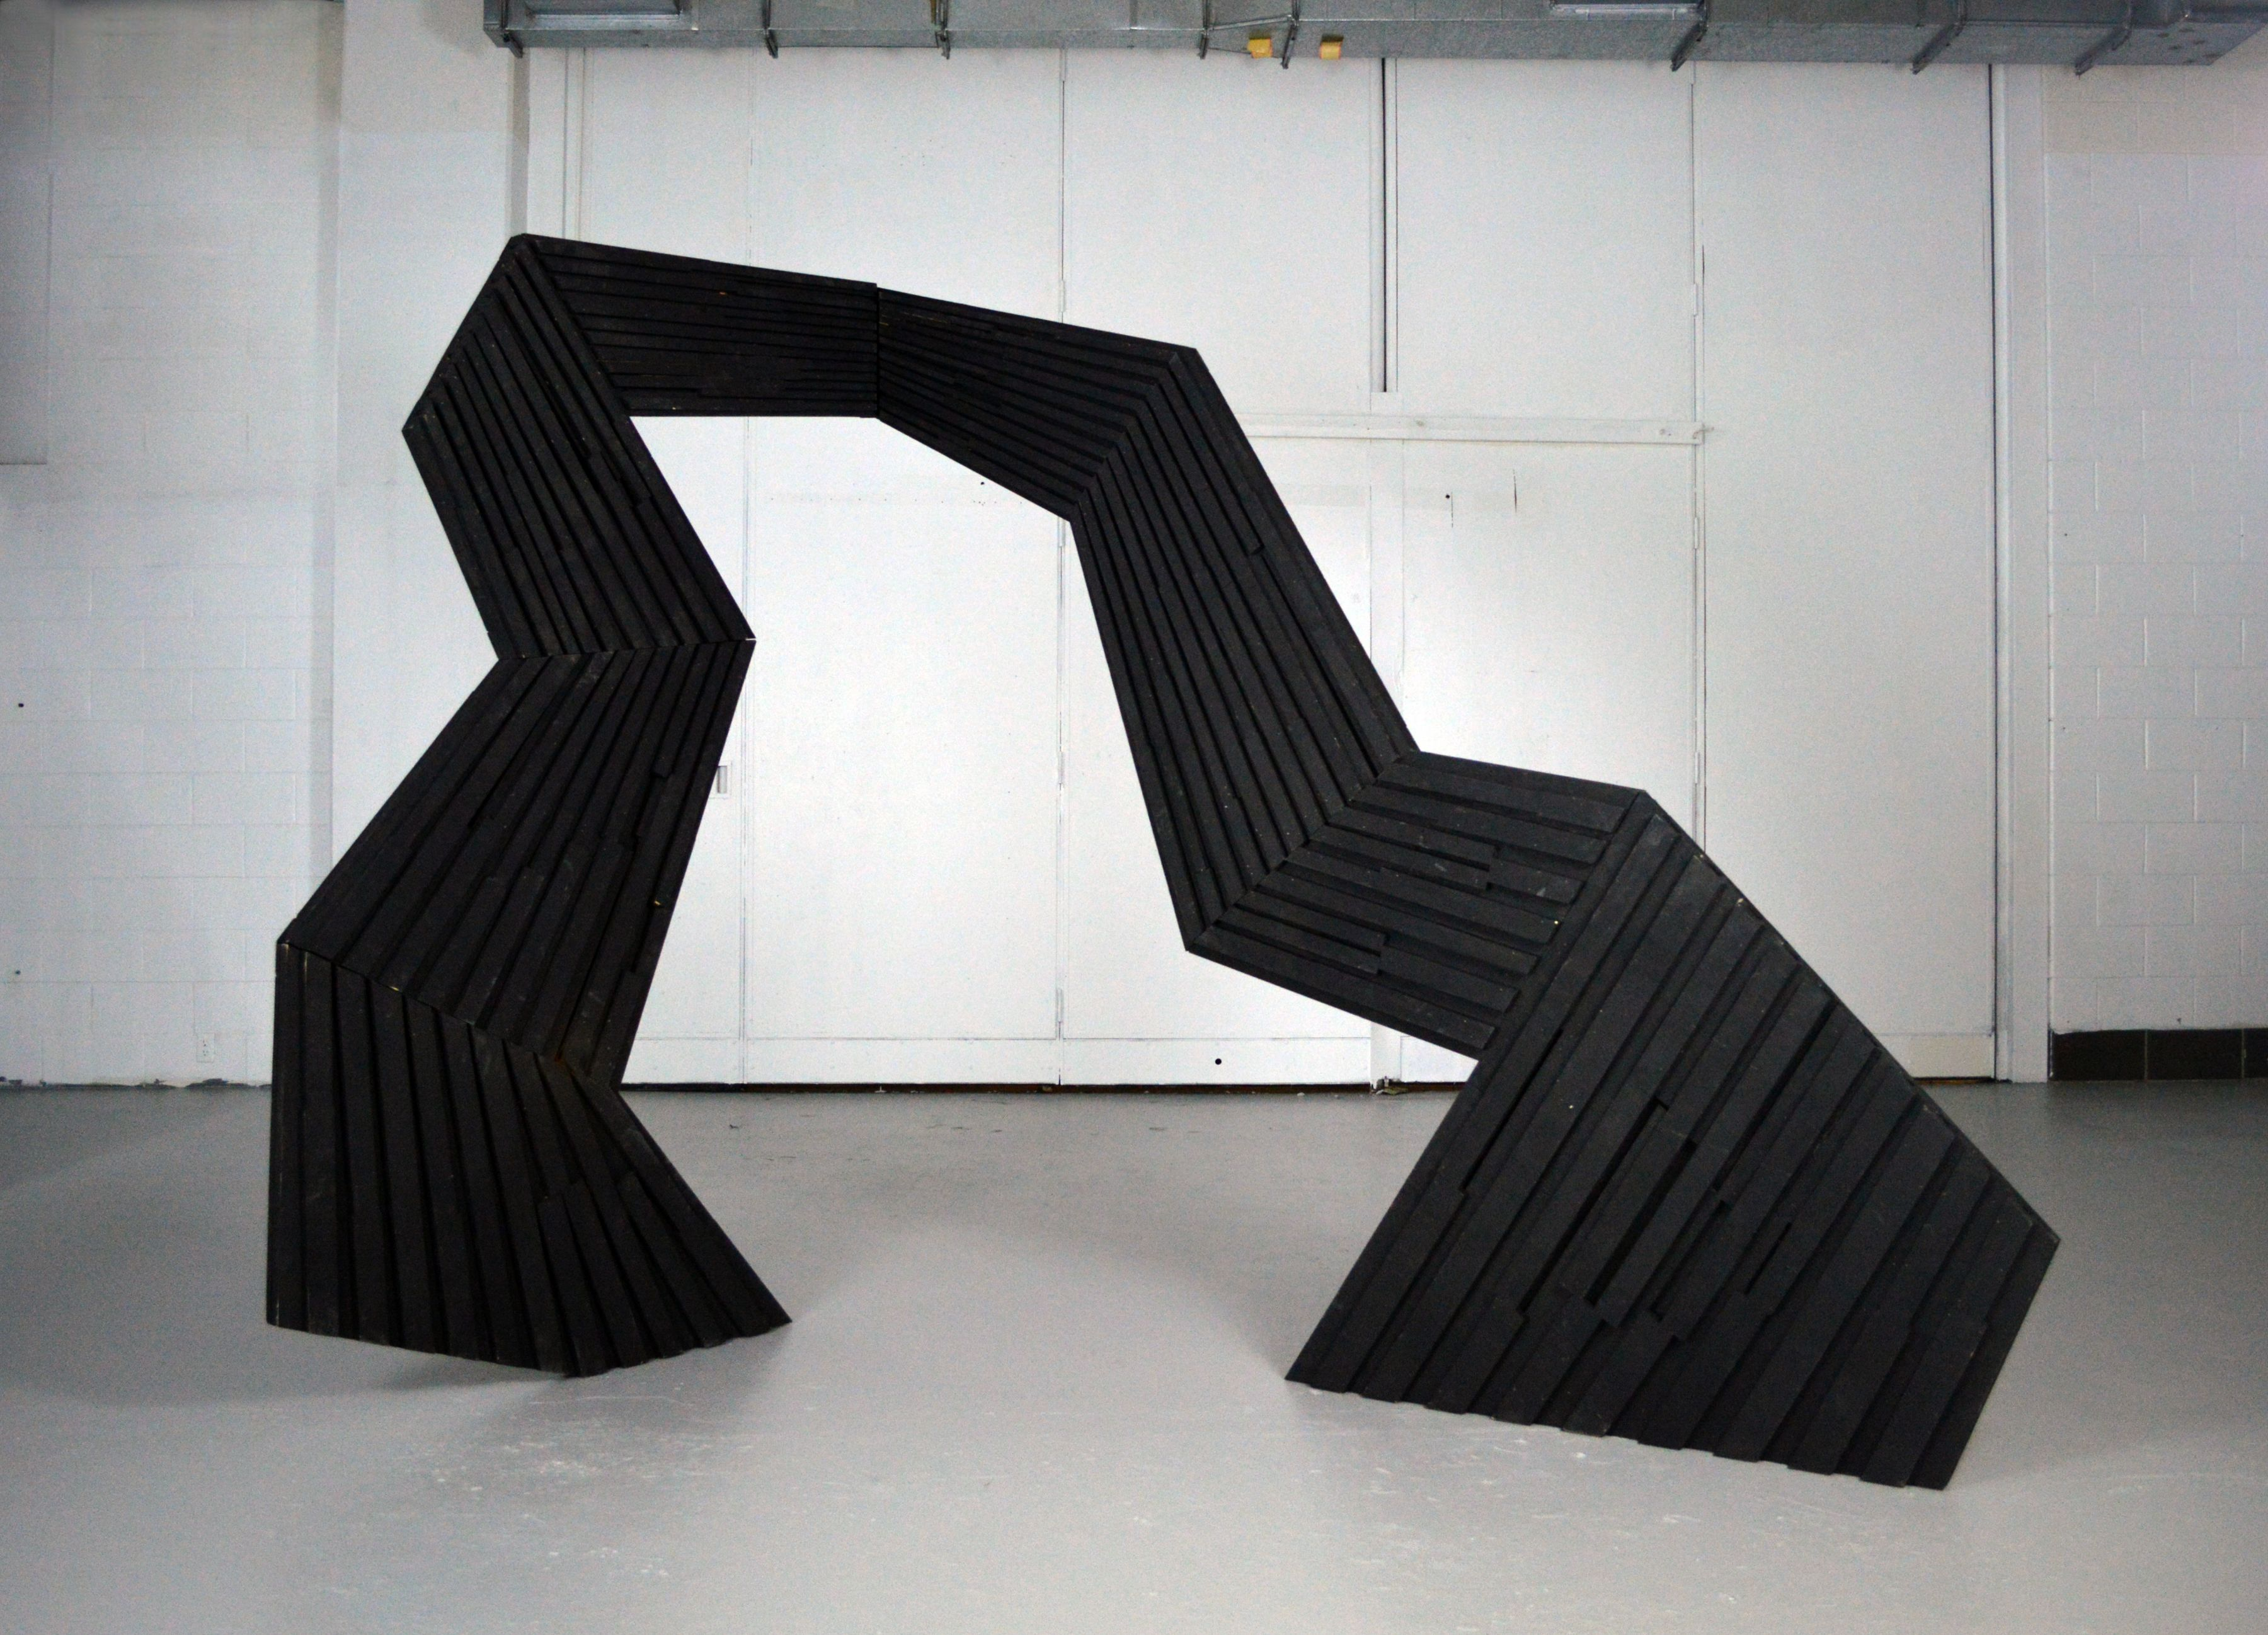 ROB HACKETT Archway 2013, plywood, steel, and paint, 8 x 13 x 5 feet.